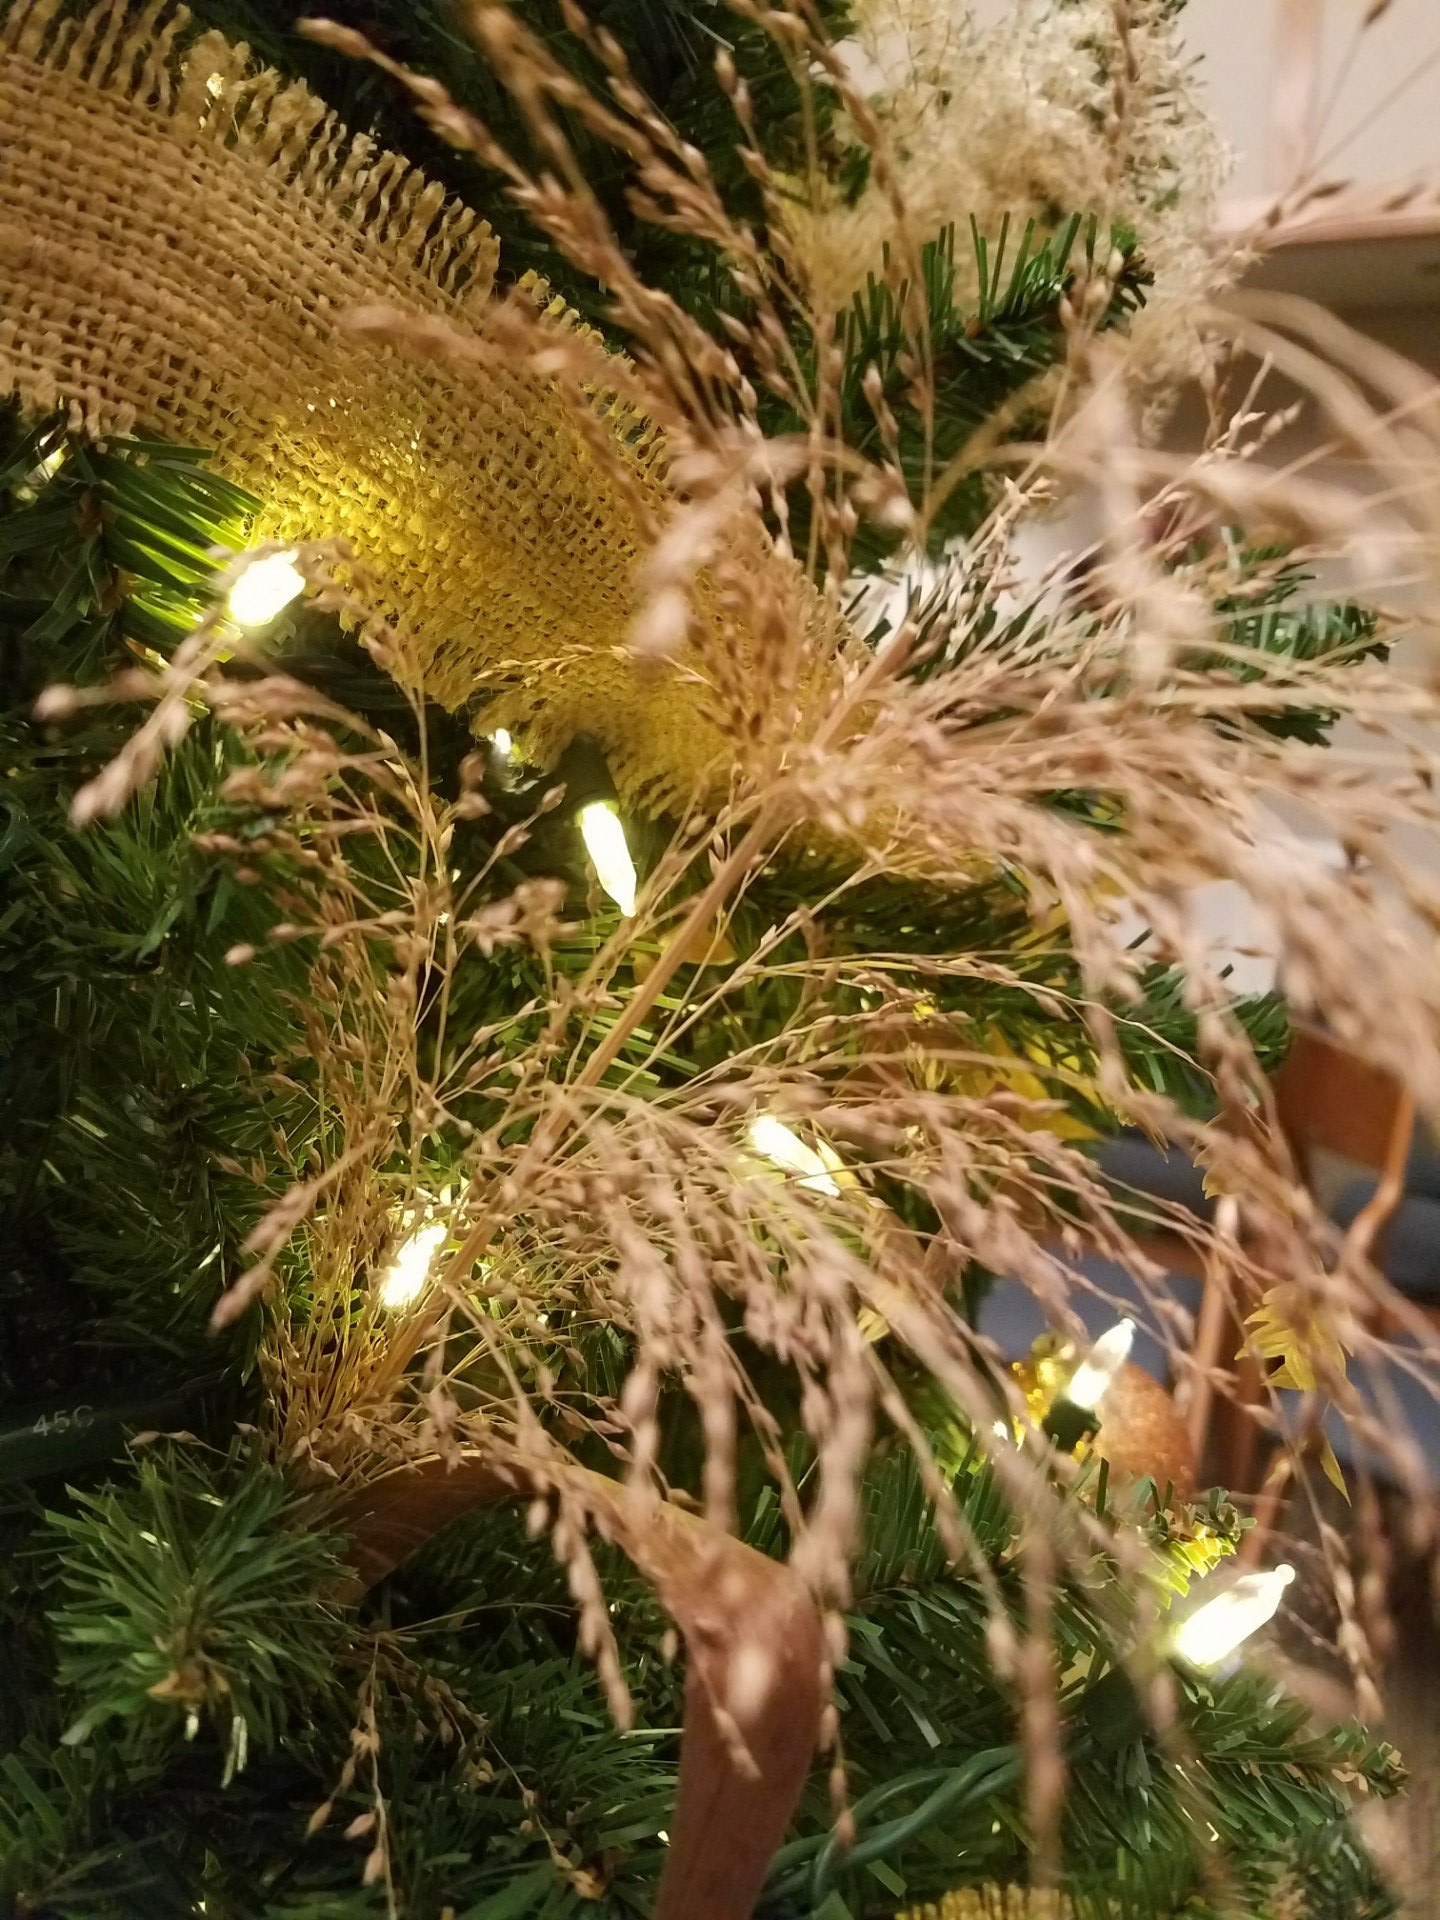 Any Christmas Tree, Cedar Or Artificial, Can Benefit From Some Ecologically  Conscious Decorations. Dried Grass And Seed Heads Of Prairie Plants Look  Magical ...